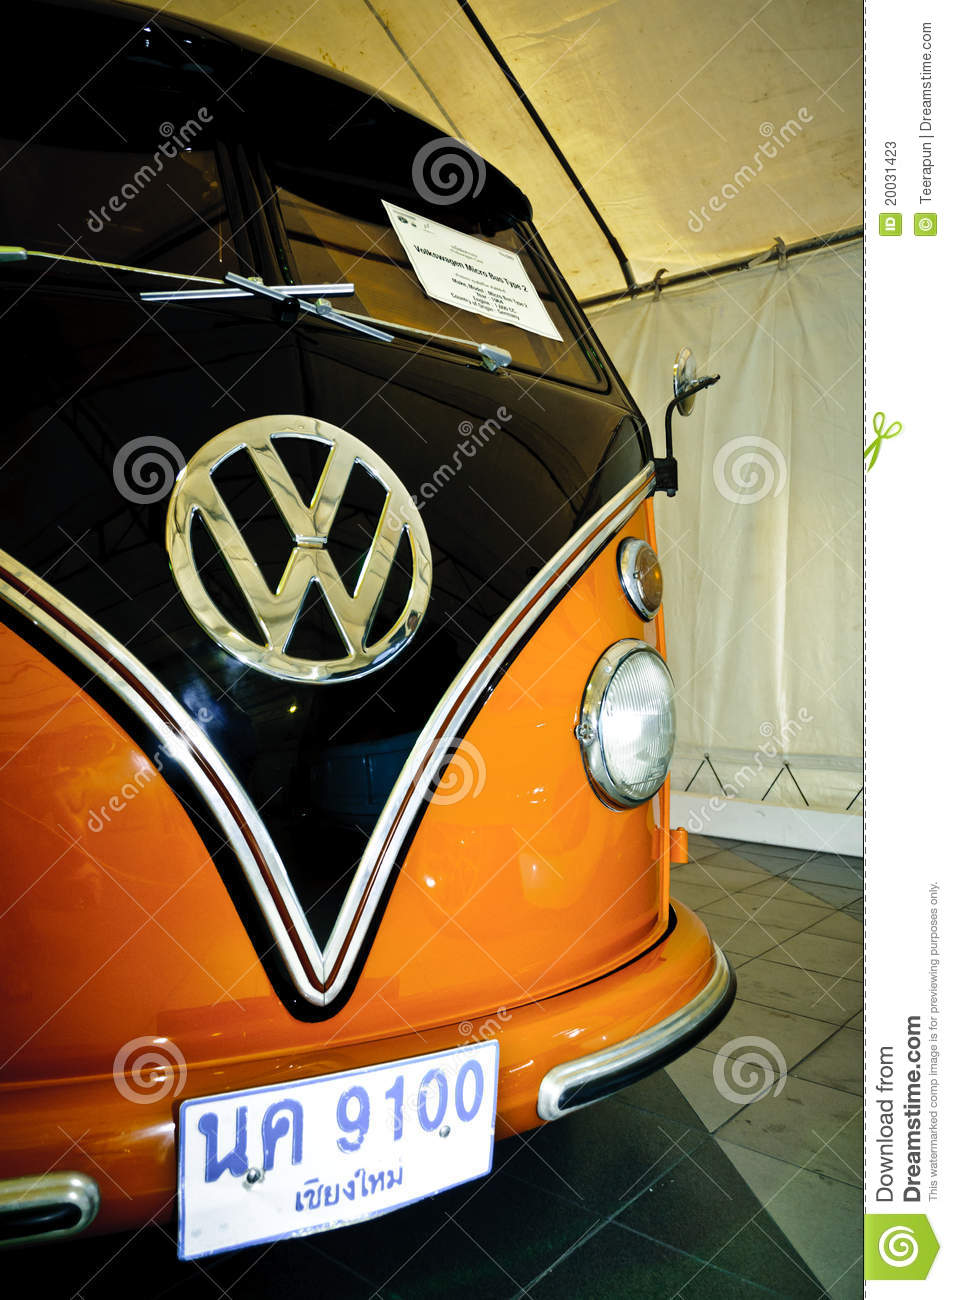 PATHUM THANI,THAILAND-JUNE 23: a Volkswagen Micro Bus Type 2 on